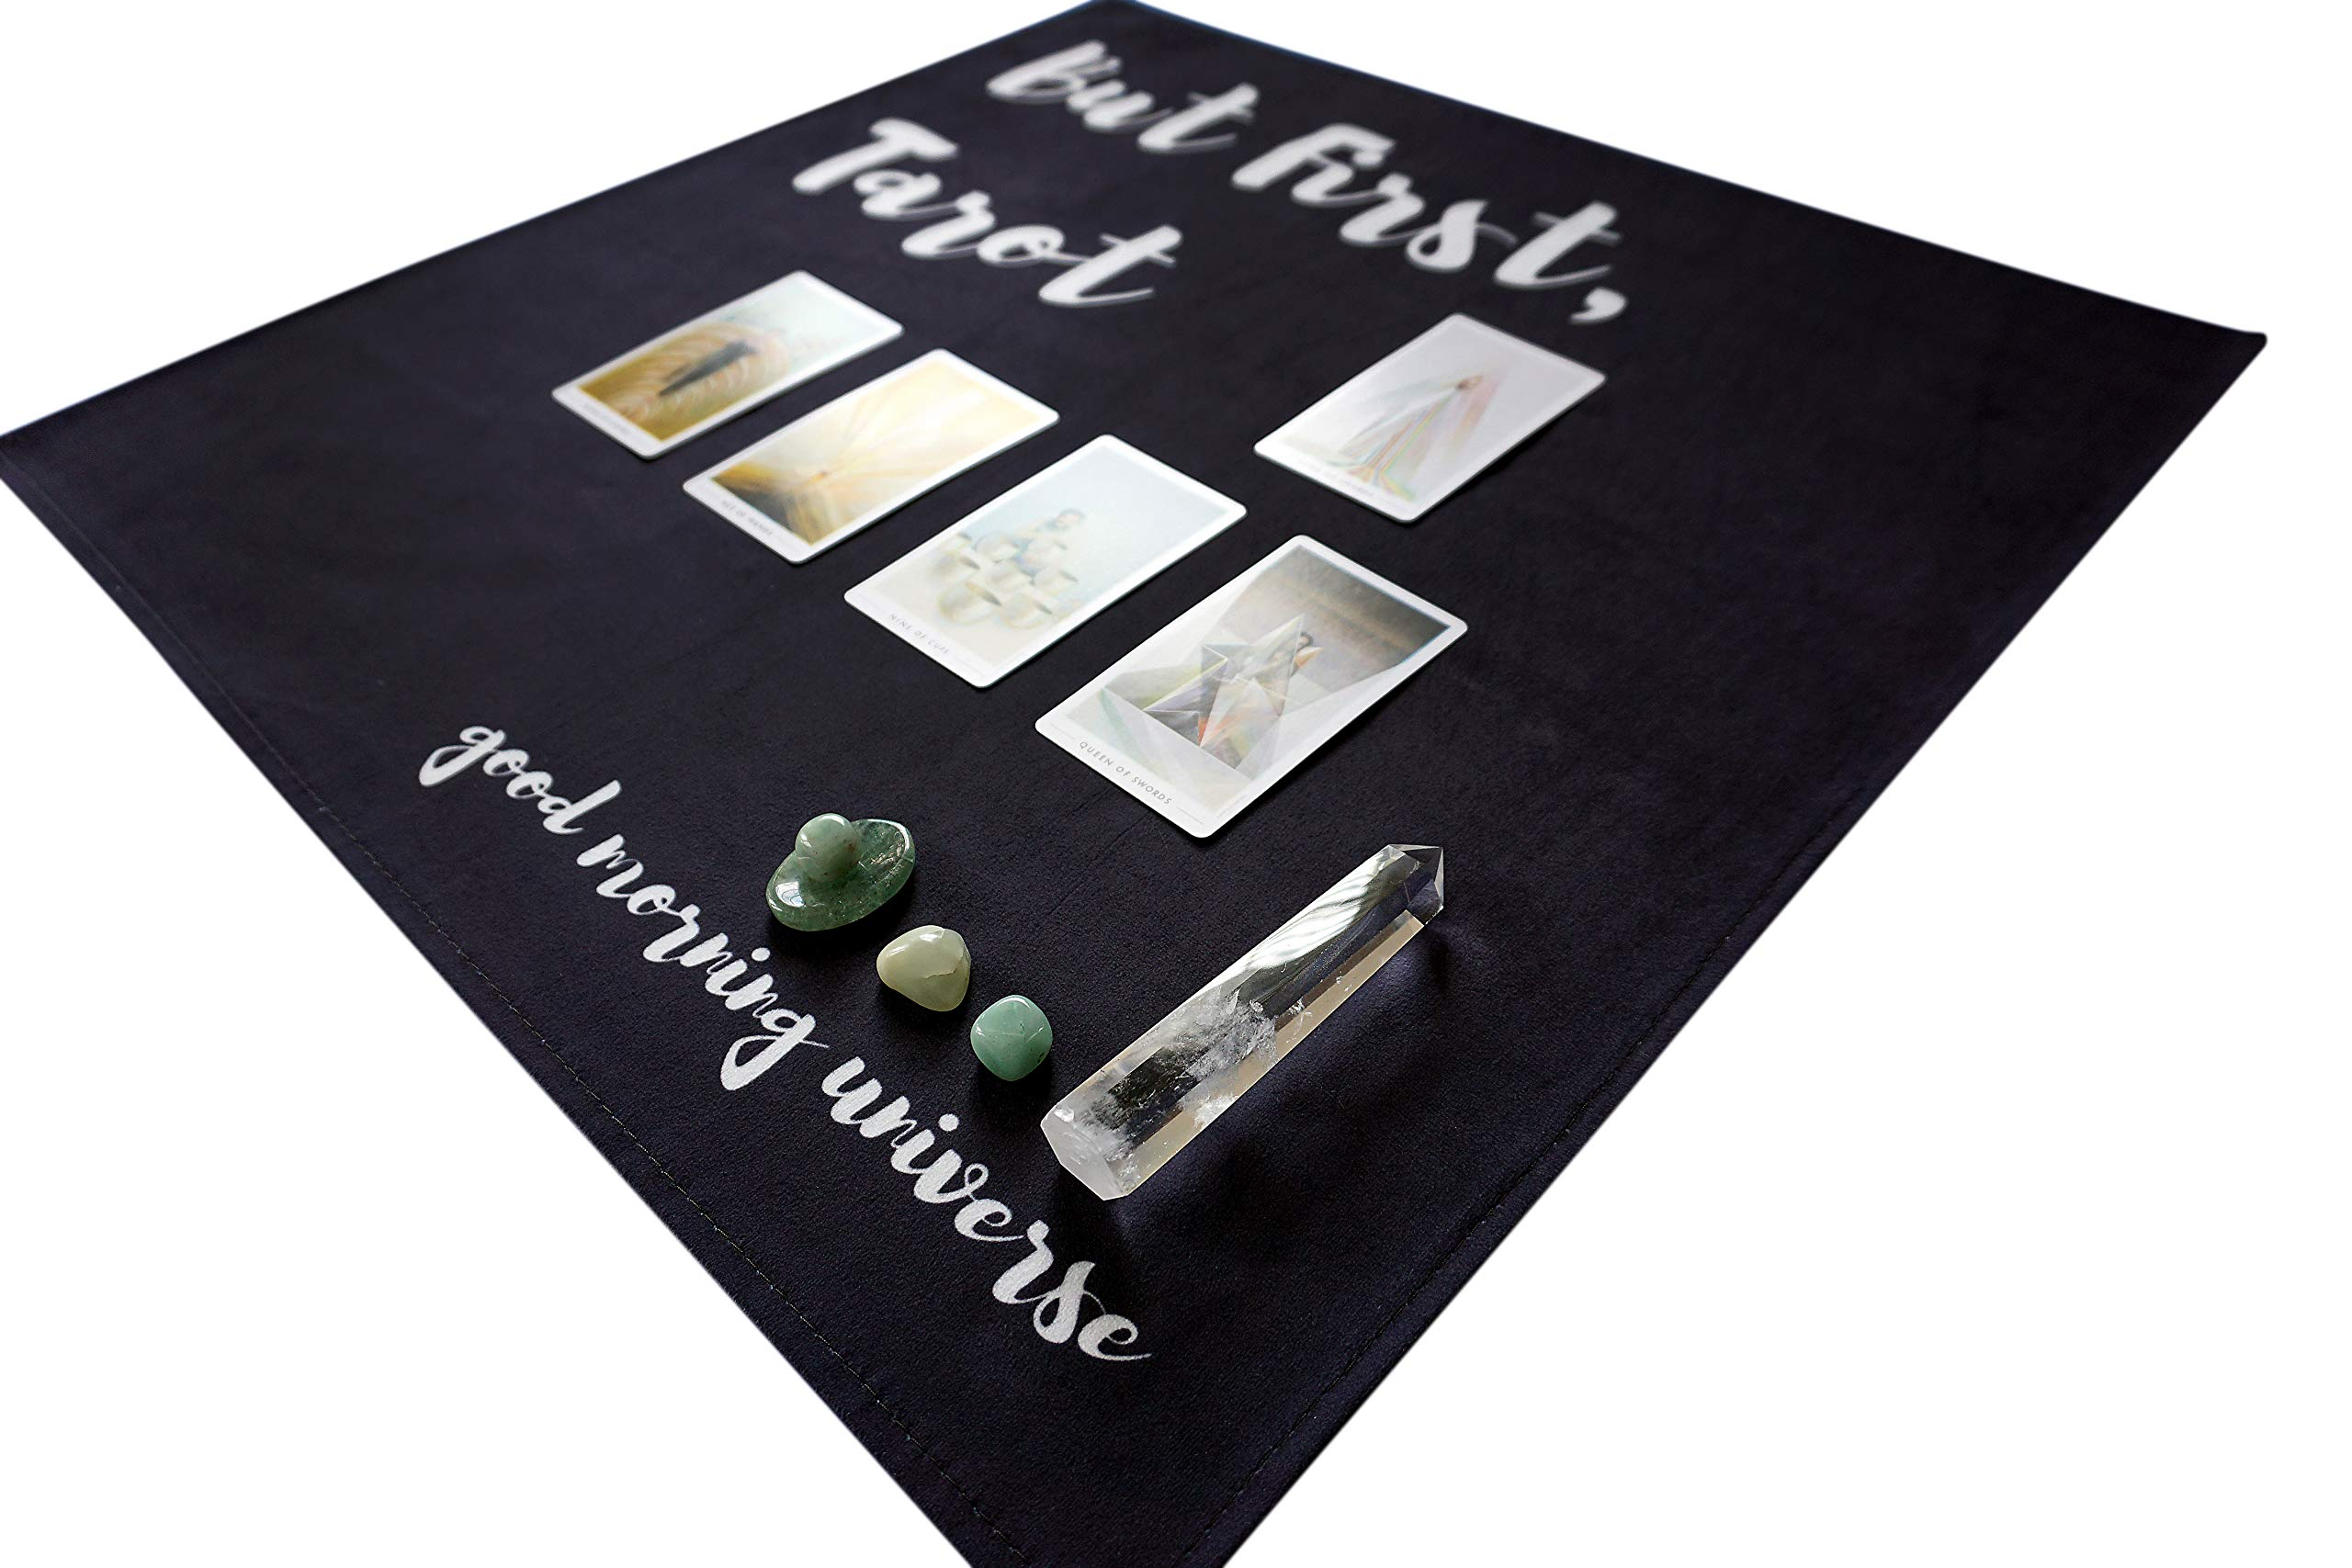 Altar Tarot Cloth with Good Morning Universe (Large, Black, 24 inches x 24 inches) by Hidden Crystal Tarot (Image #4)